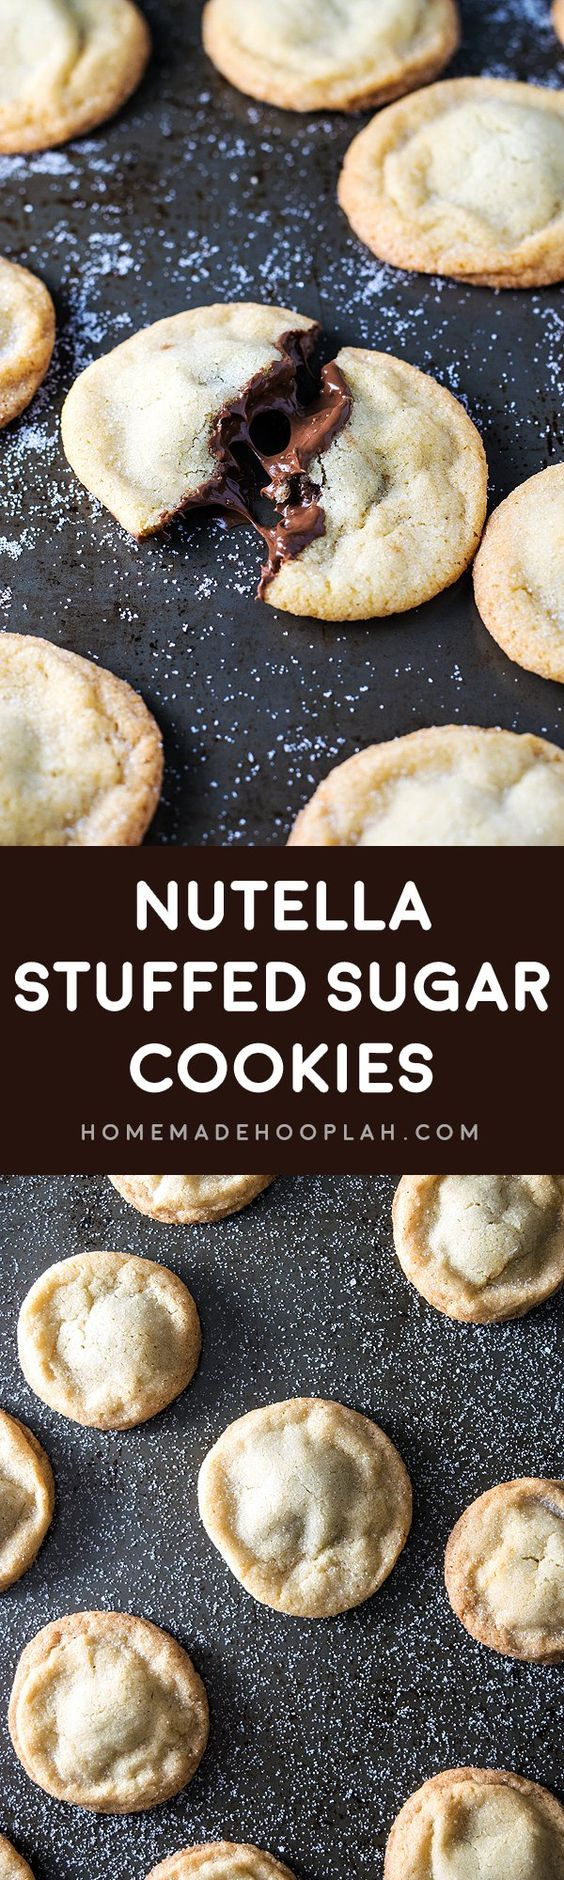 Nutella Stuffed Sugar Cookies! Old fashioned soft and chewy sugar cookies stuffed with creamy Nutella. It's as delicious as it sounds!   HomemadeHooplah.com